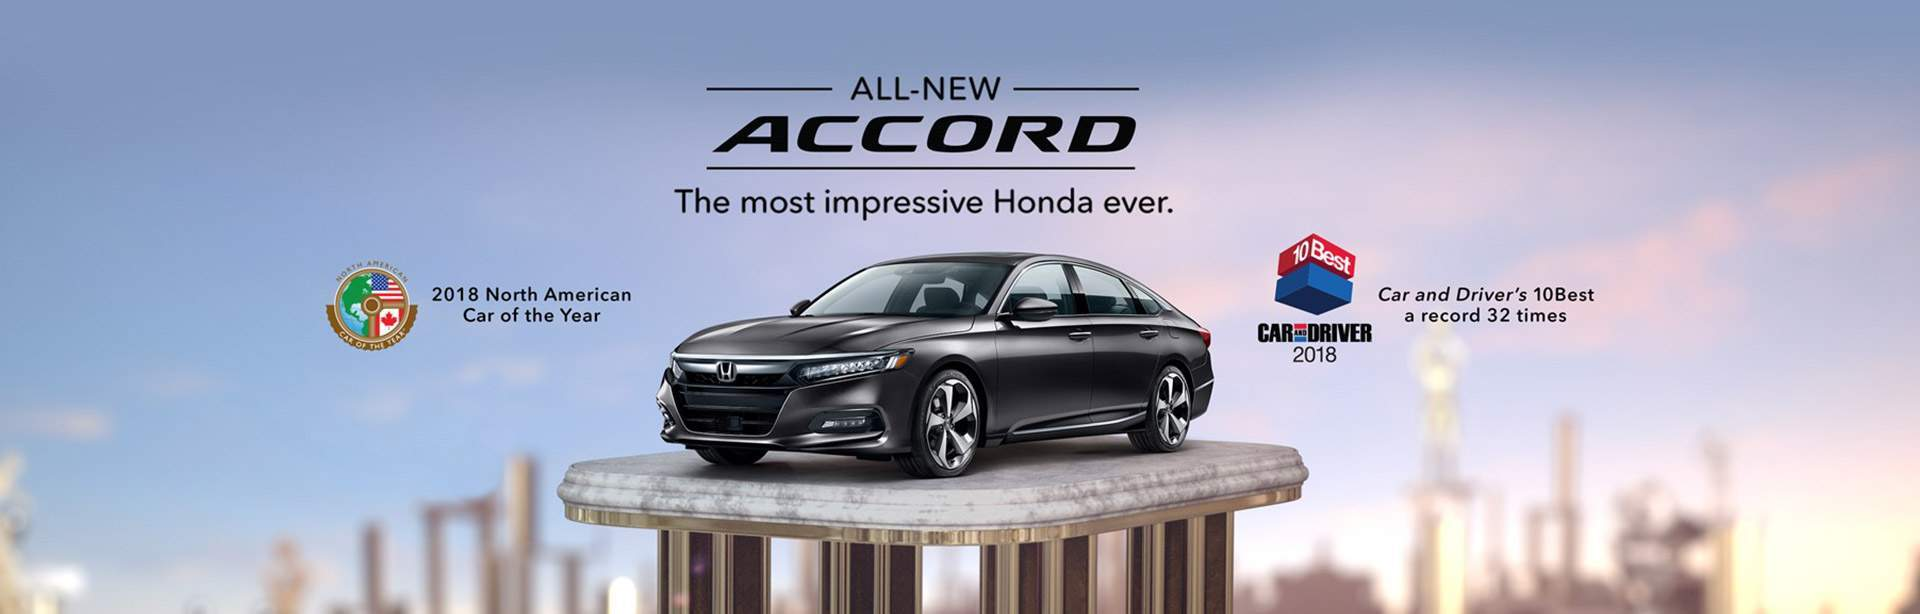 18 Accord Car of the Year